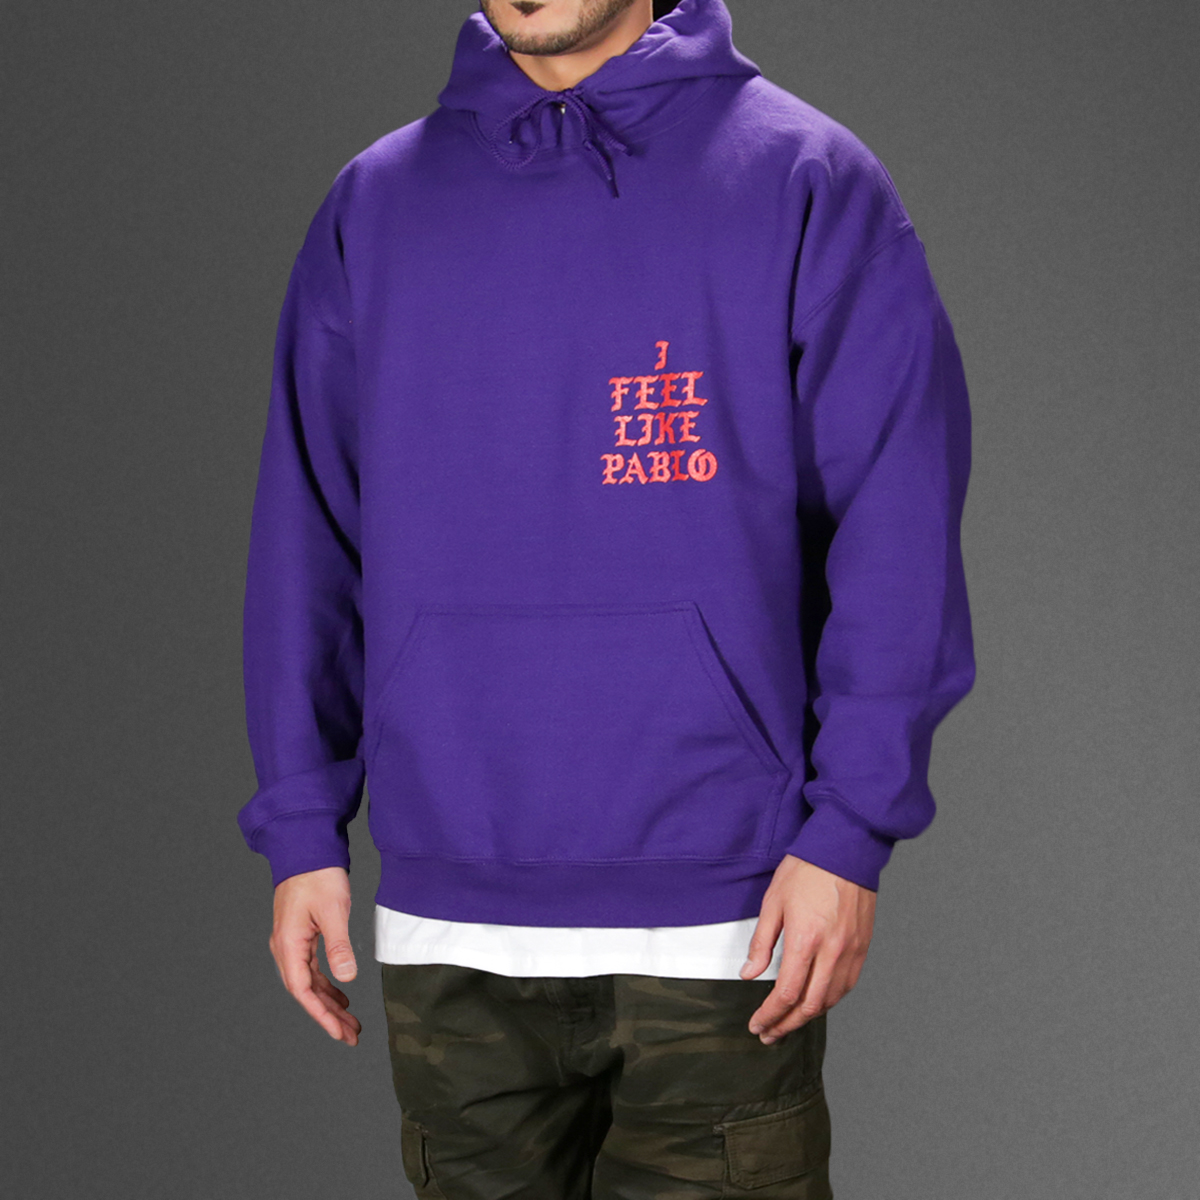 All the details about Purple Hoodie: